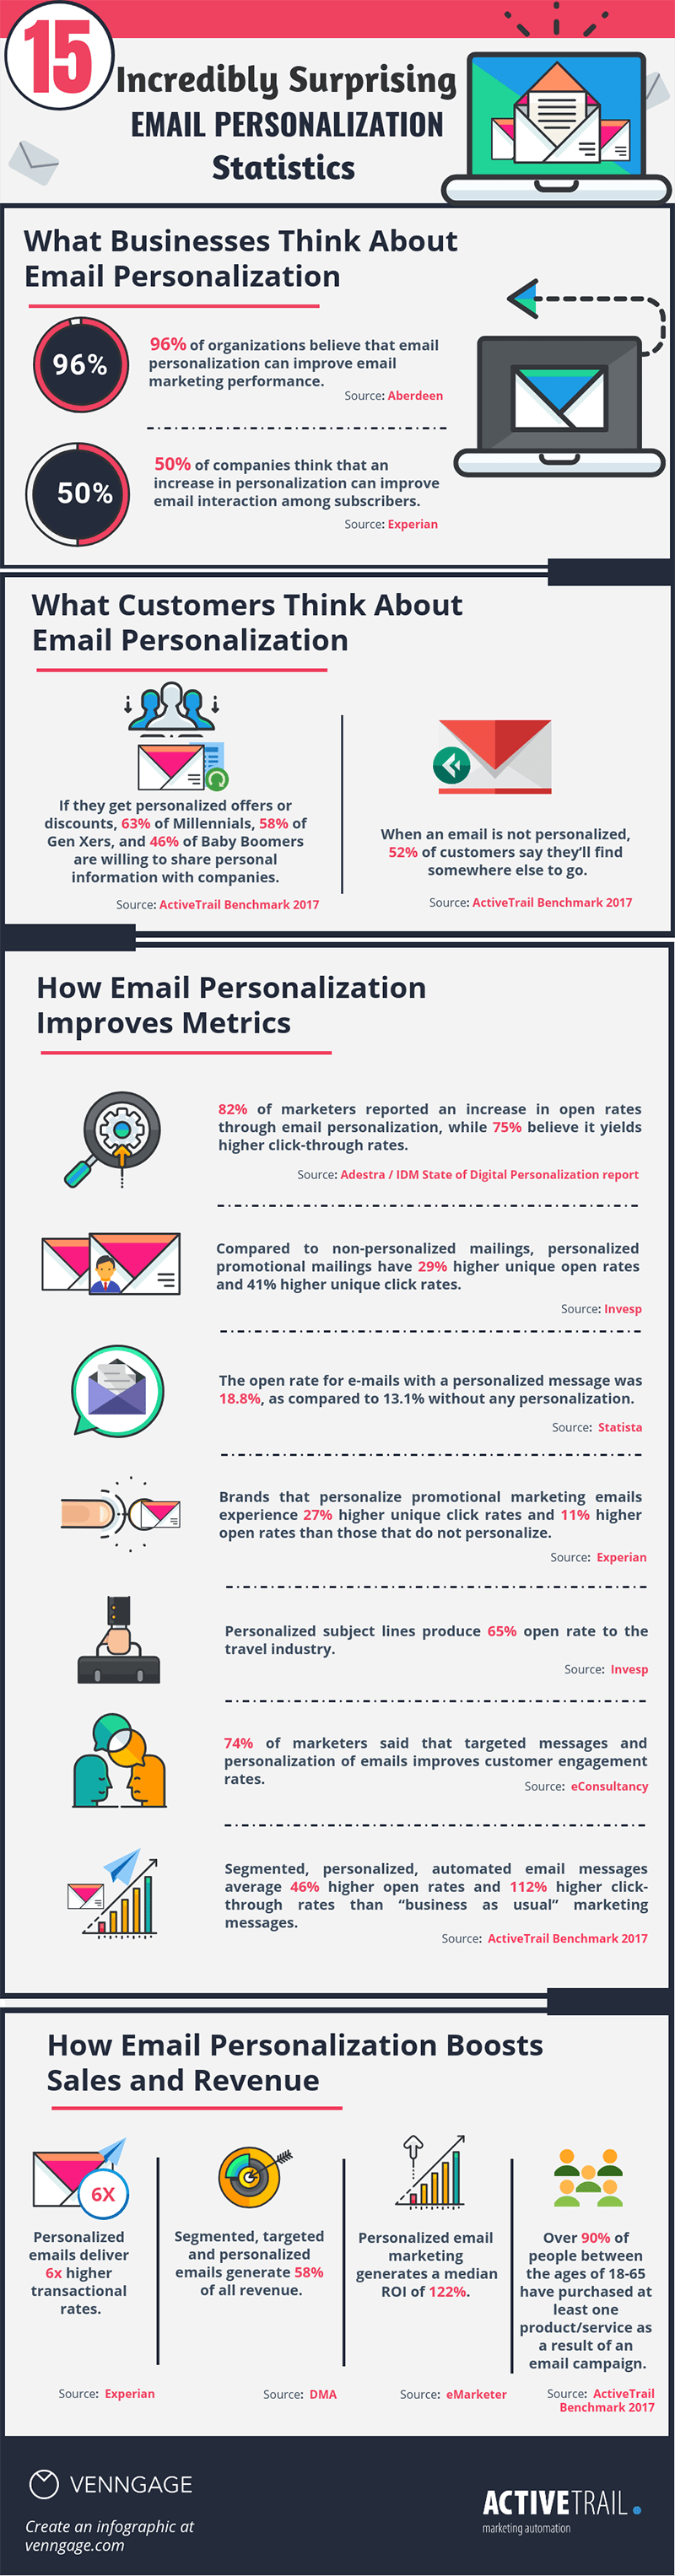 15 Incredibly Surprising Email Personalization Statistics_Infographic